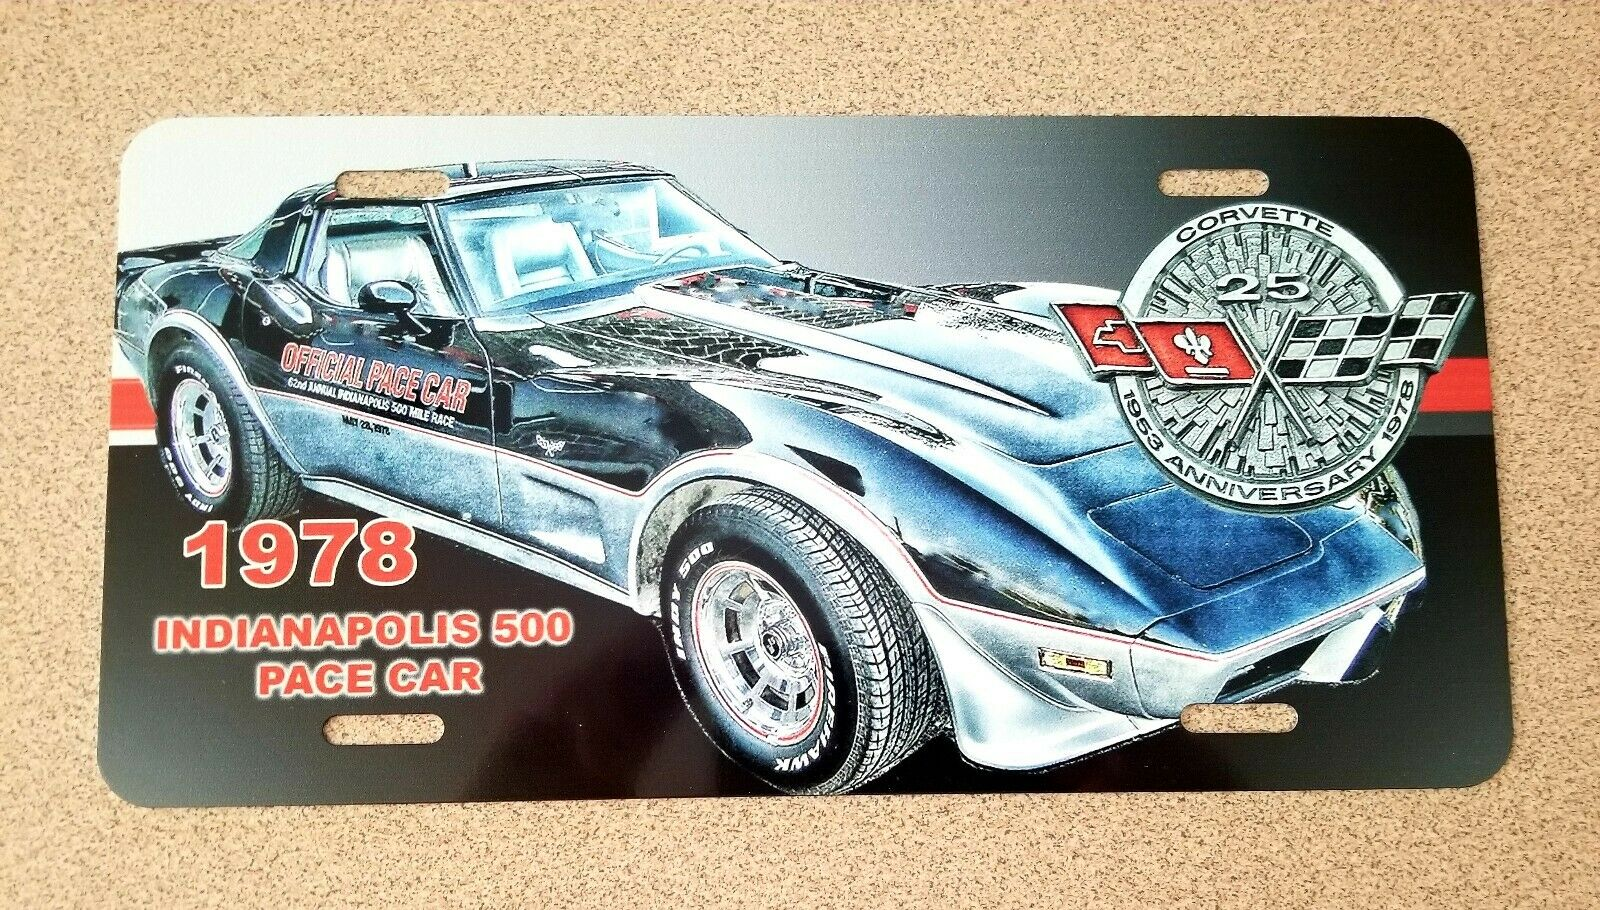 1978 Corvette Pace Car 25th Anniversary Emblem, License Plate, Magazine Route 66 1996 Corvette Fever Magazine